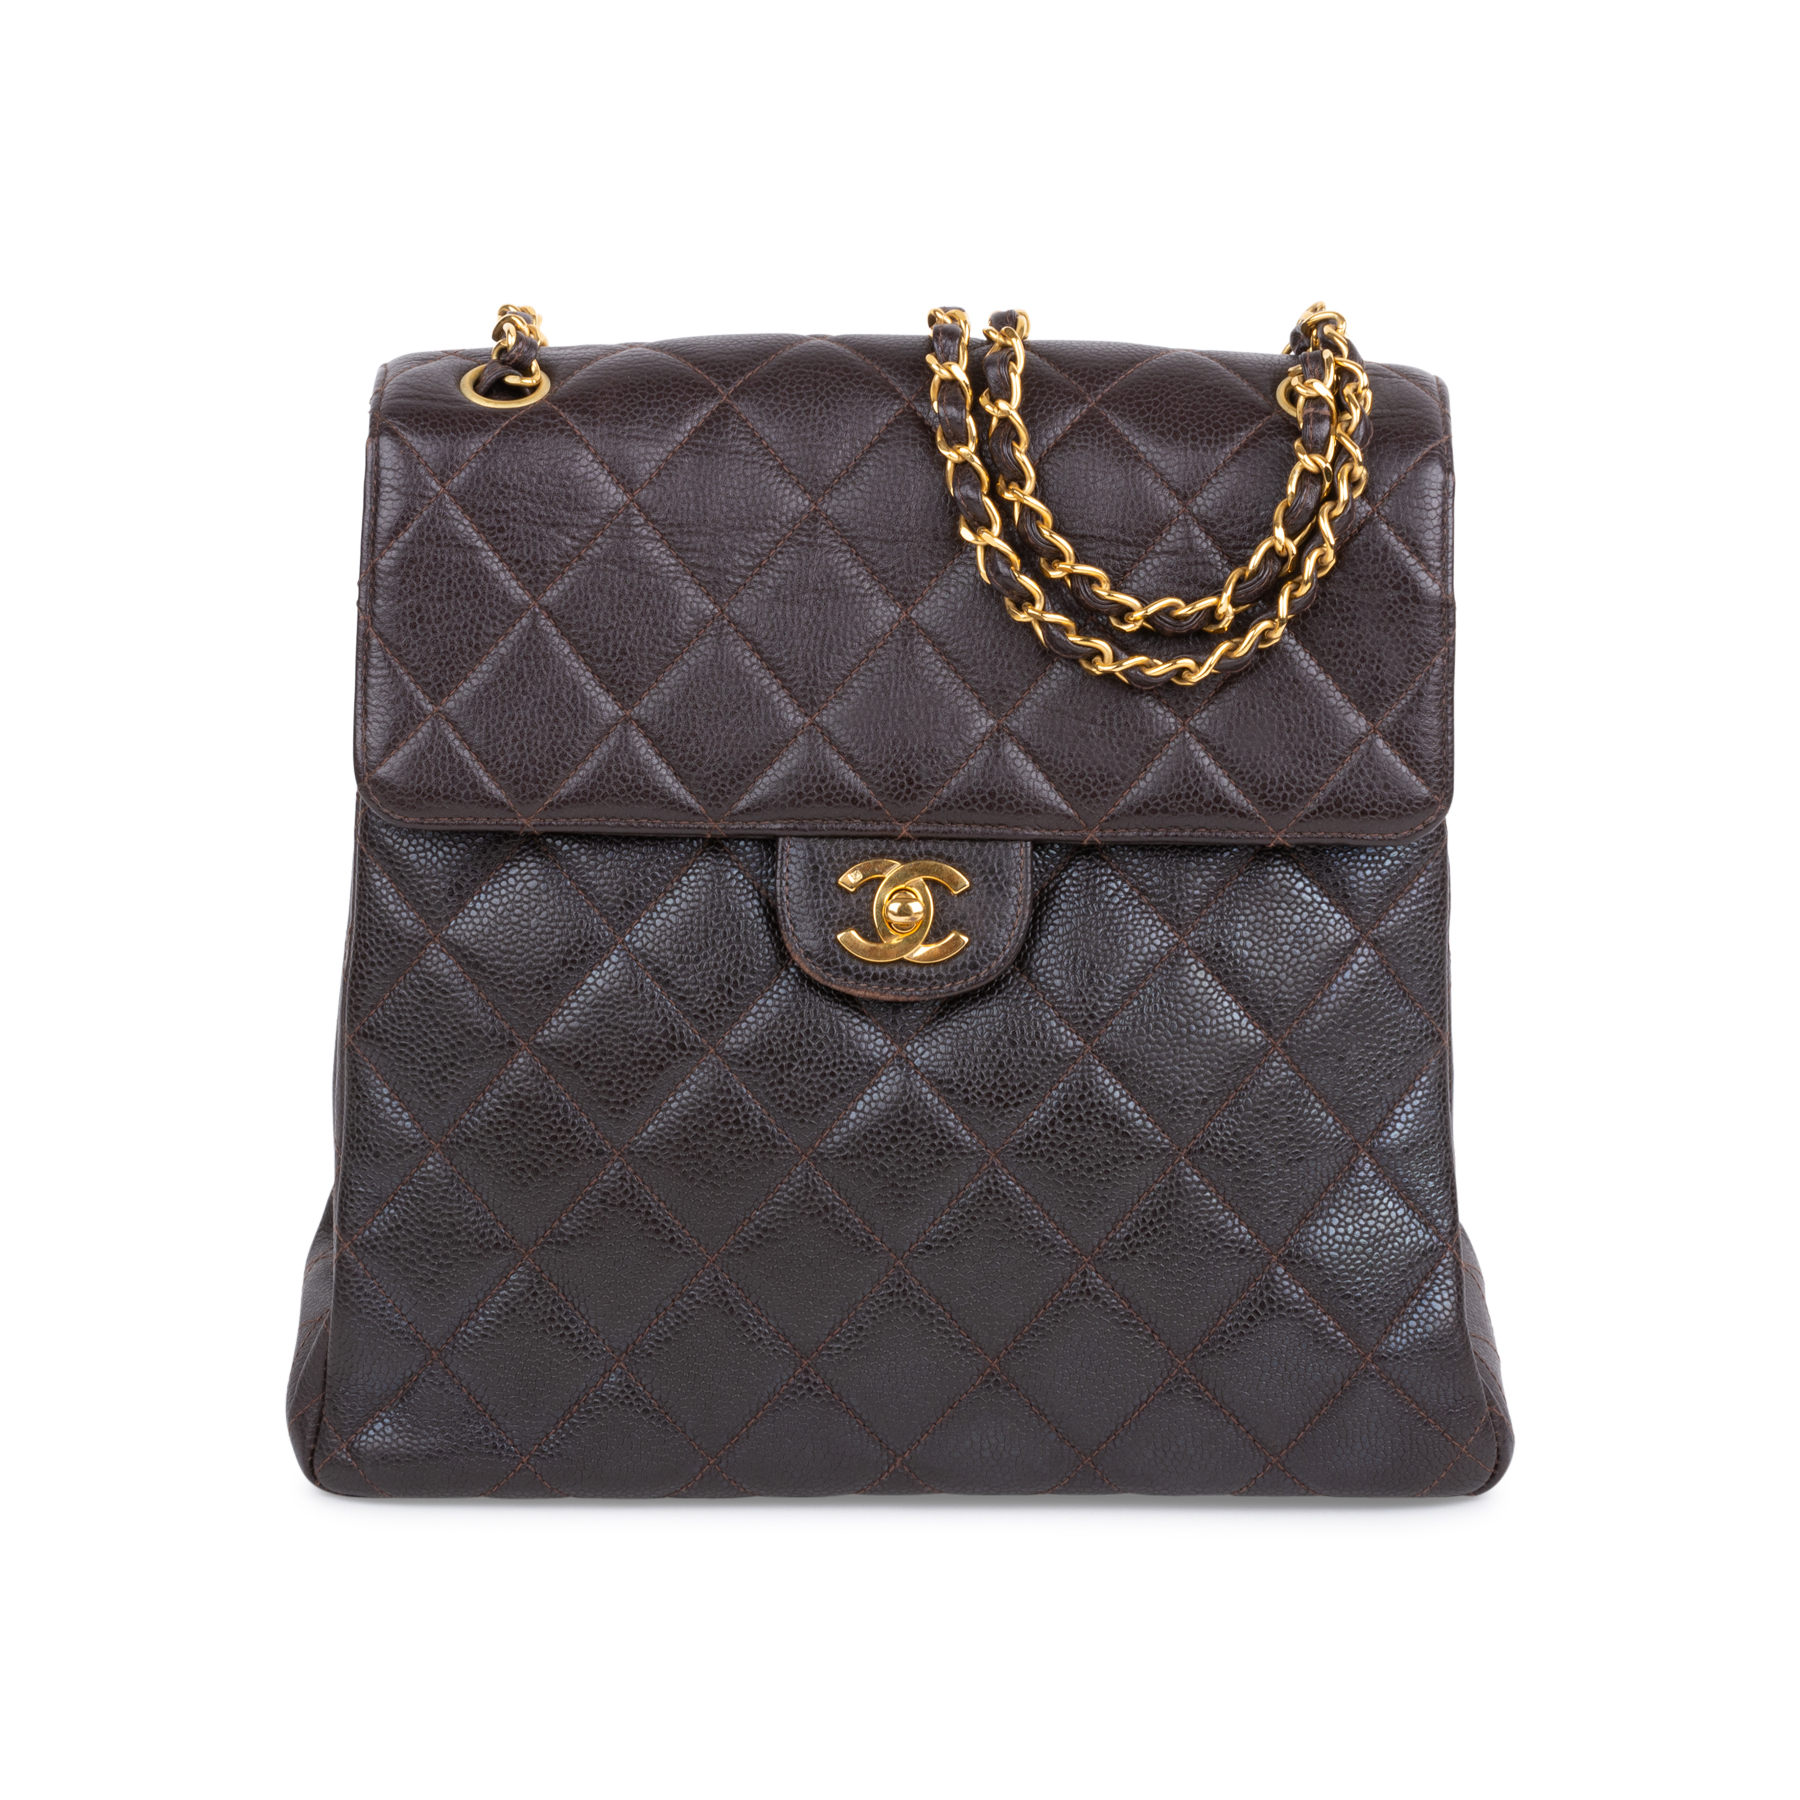 1d7b1005b Authentic Vintage Chanel Double Sided Flap Bag (PSS-606-00013) - THE FIFTH  COLLECTION